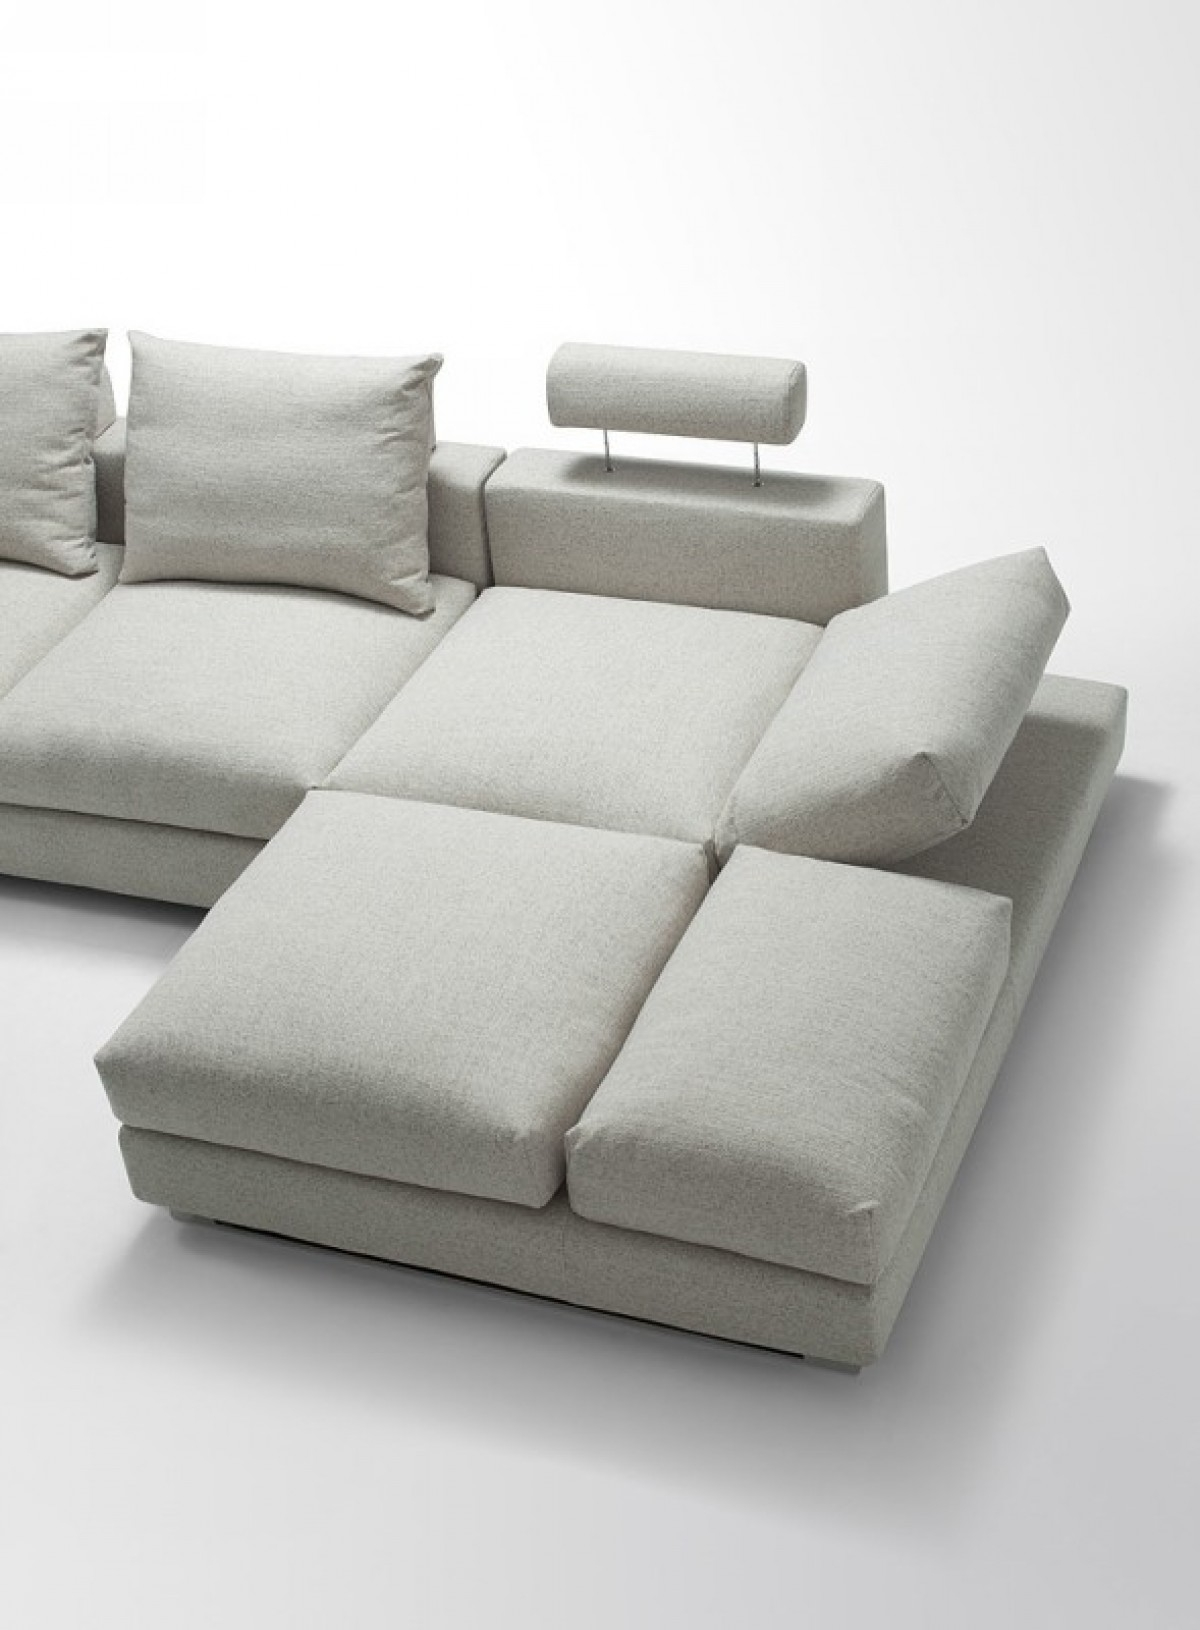 Divani Casa Vasto Modern Fabric Sectional Sofa With Down Feather Intended For Down Feather Sectional Sofa (#6 of 12)